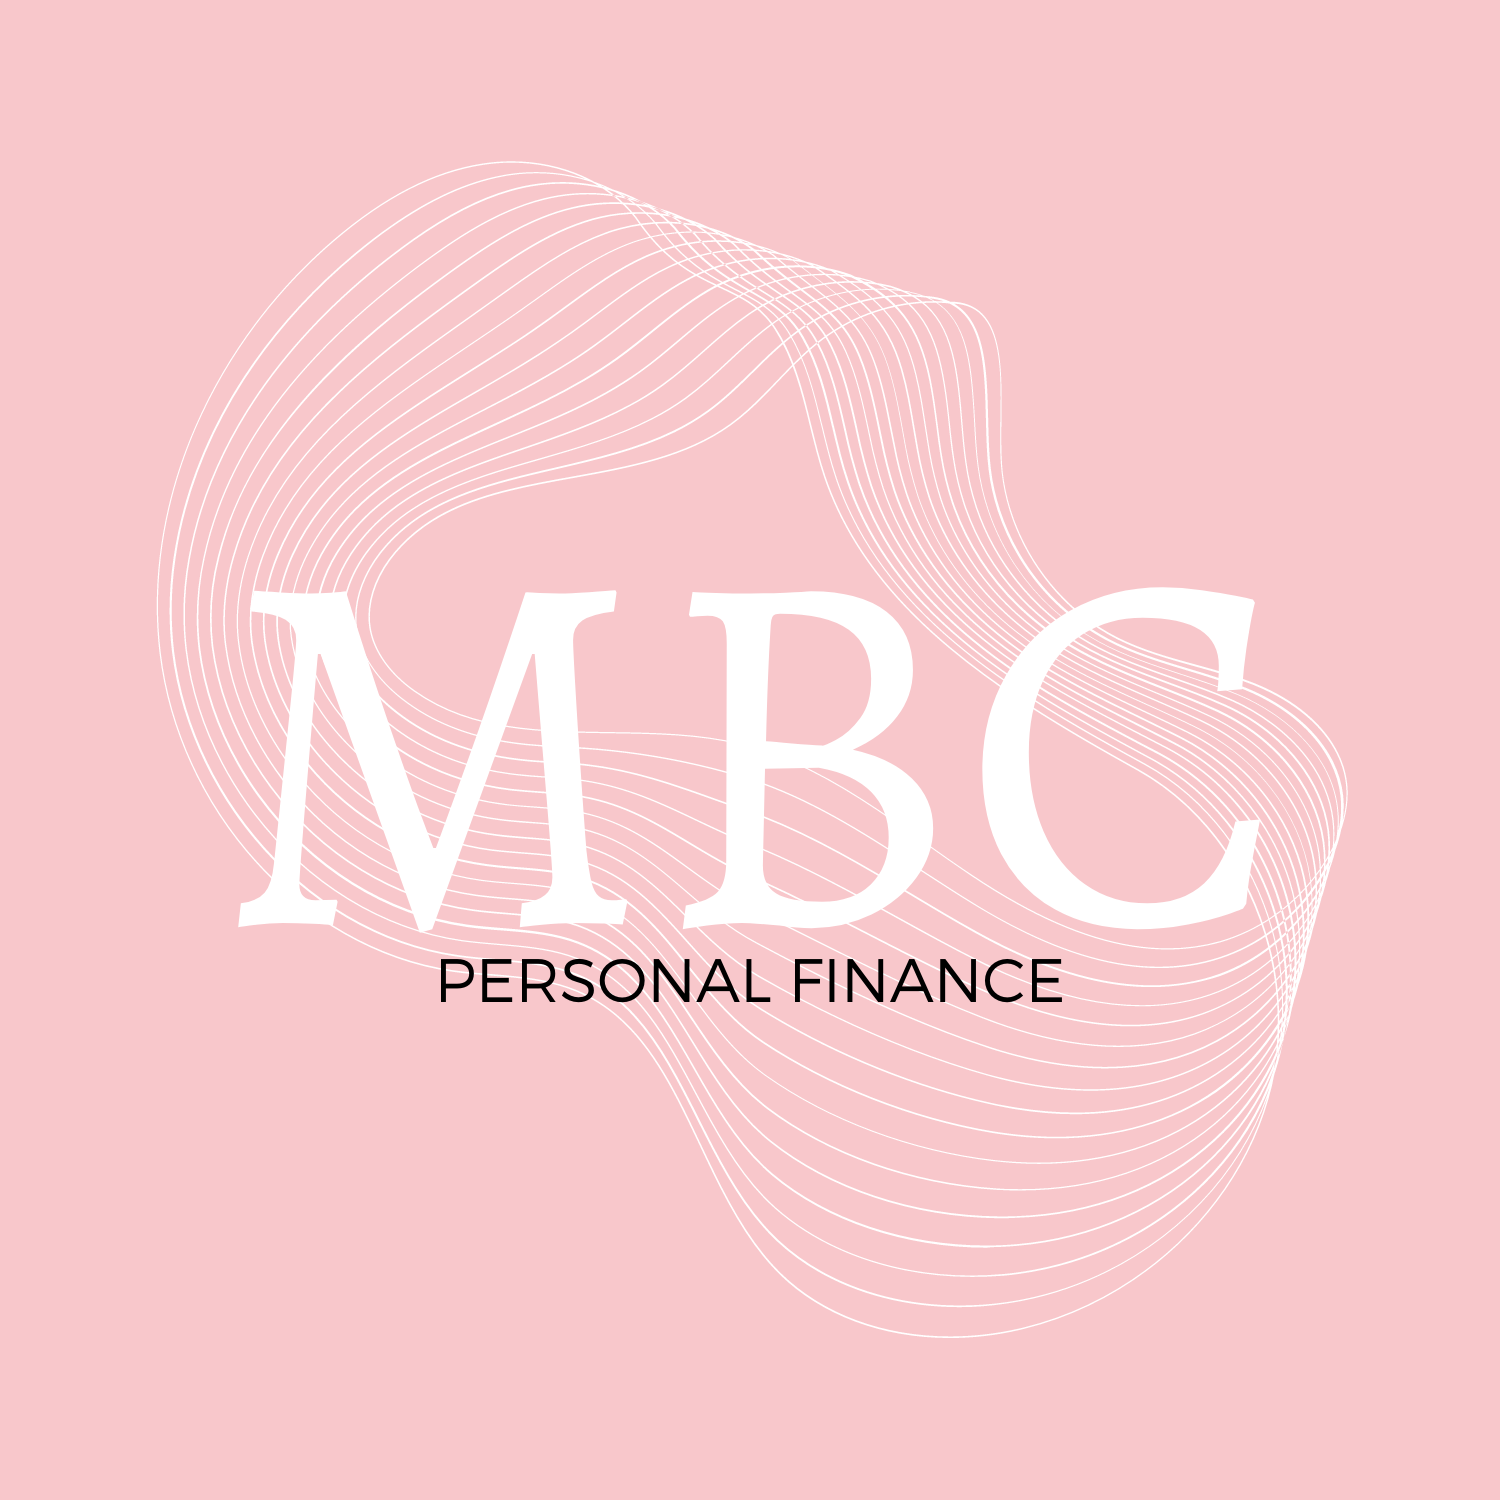 @MyBudgetCulture on building wealth